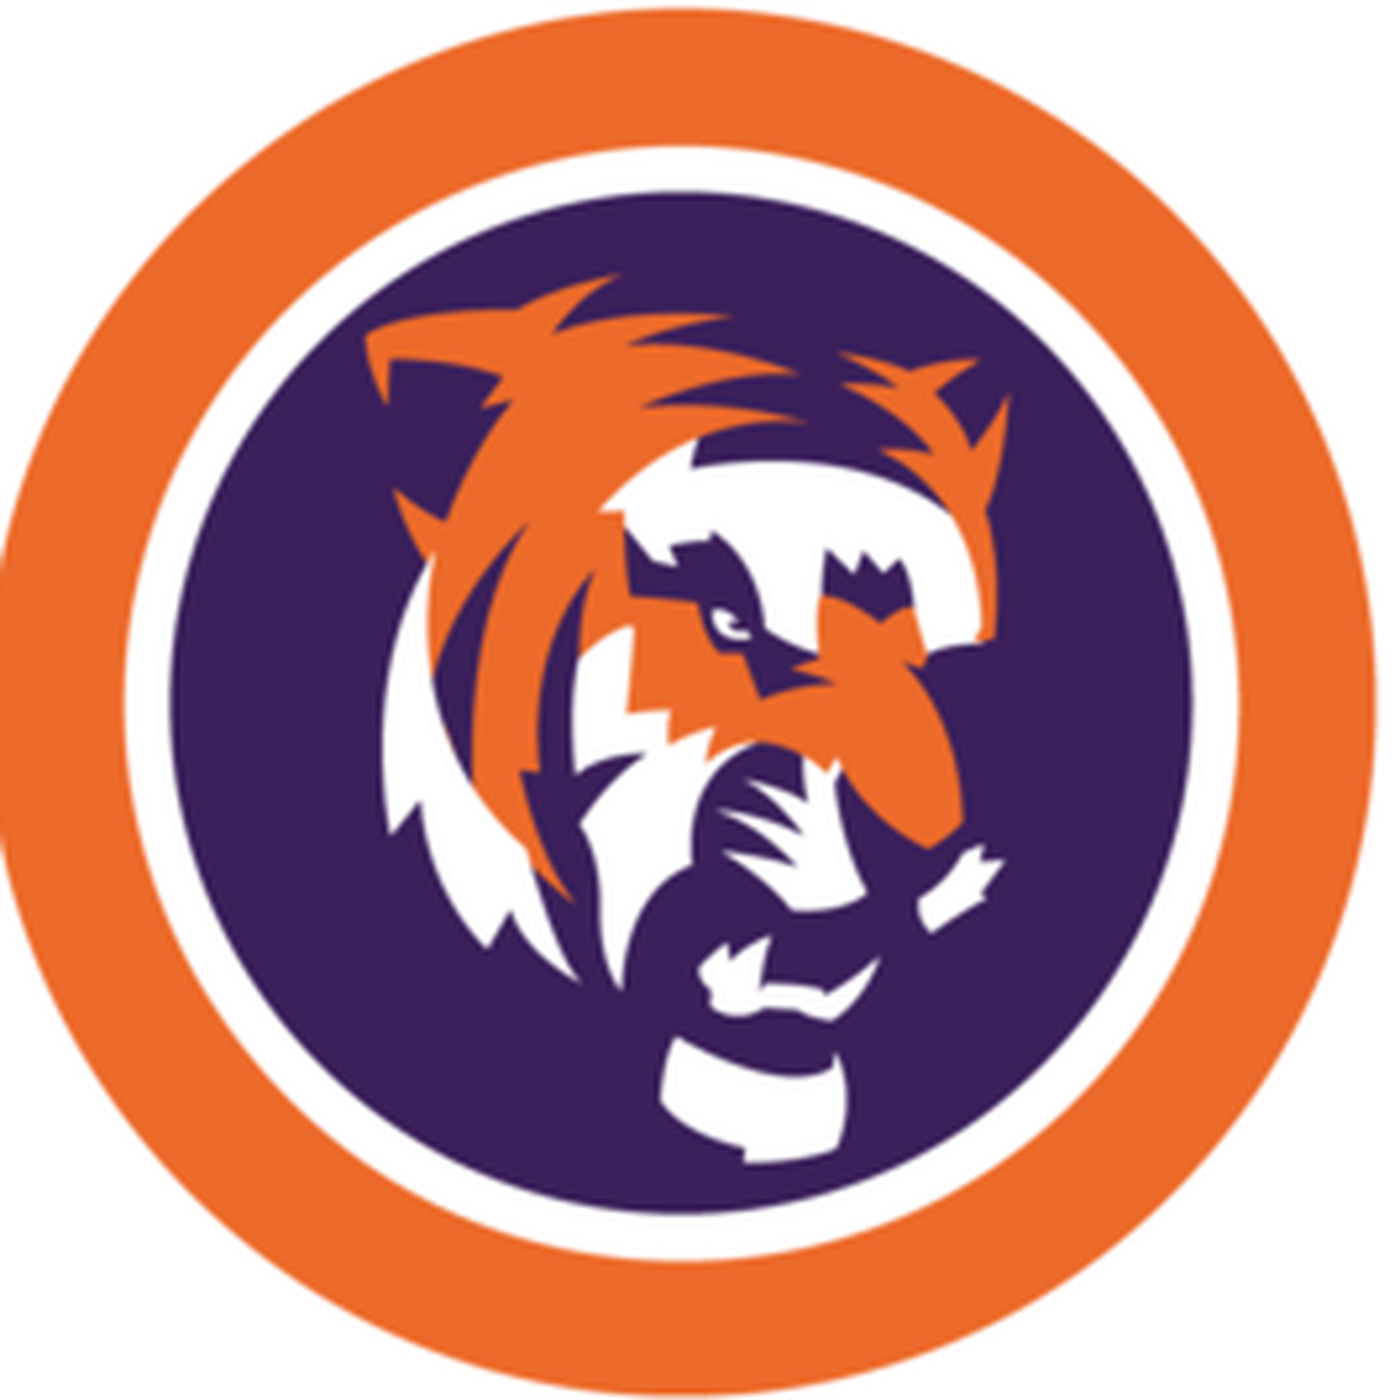 Tiger dunking basketball clipart clipart library download 2009-2010 Clemson Basketball Season Review - Shakin The Southland clipart library download